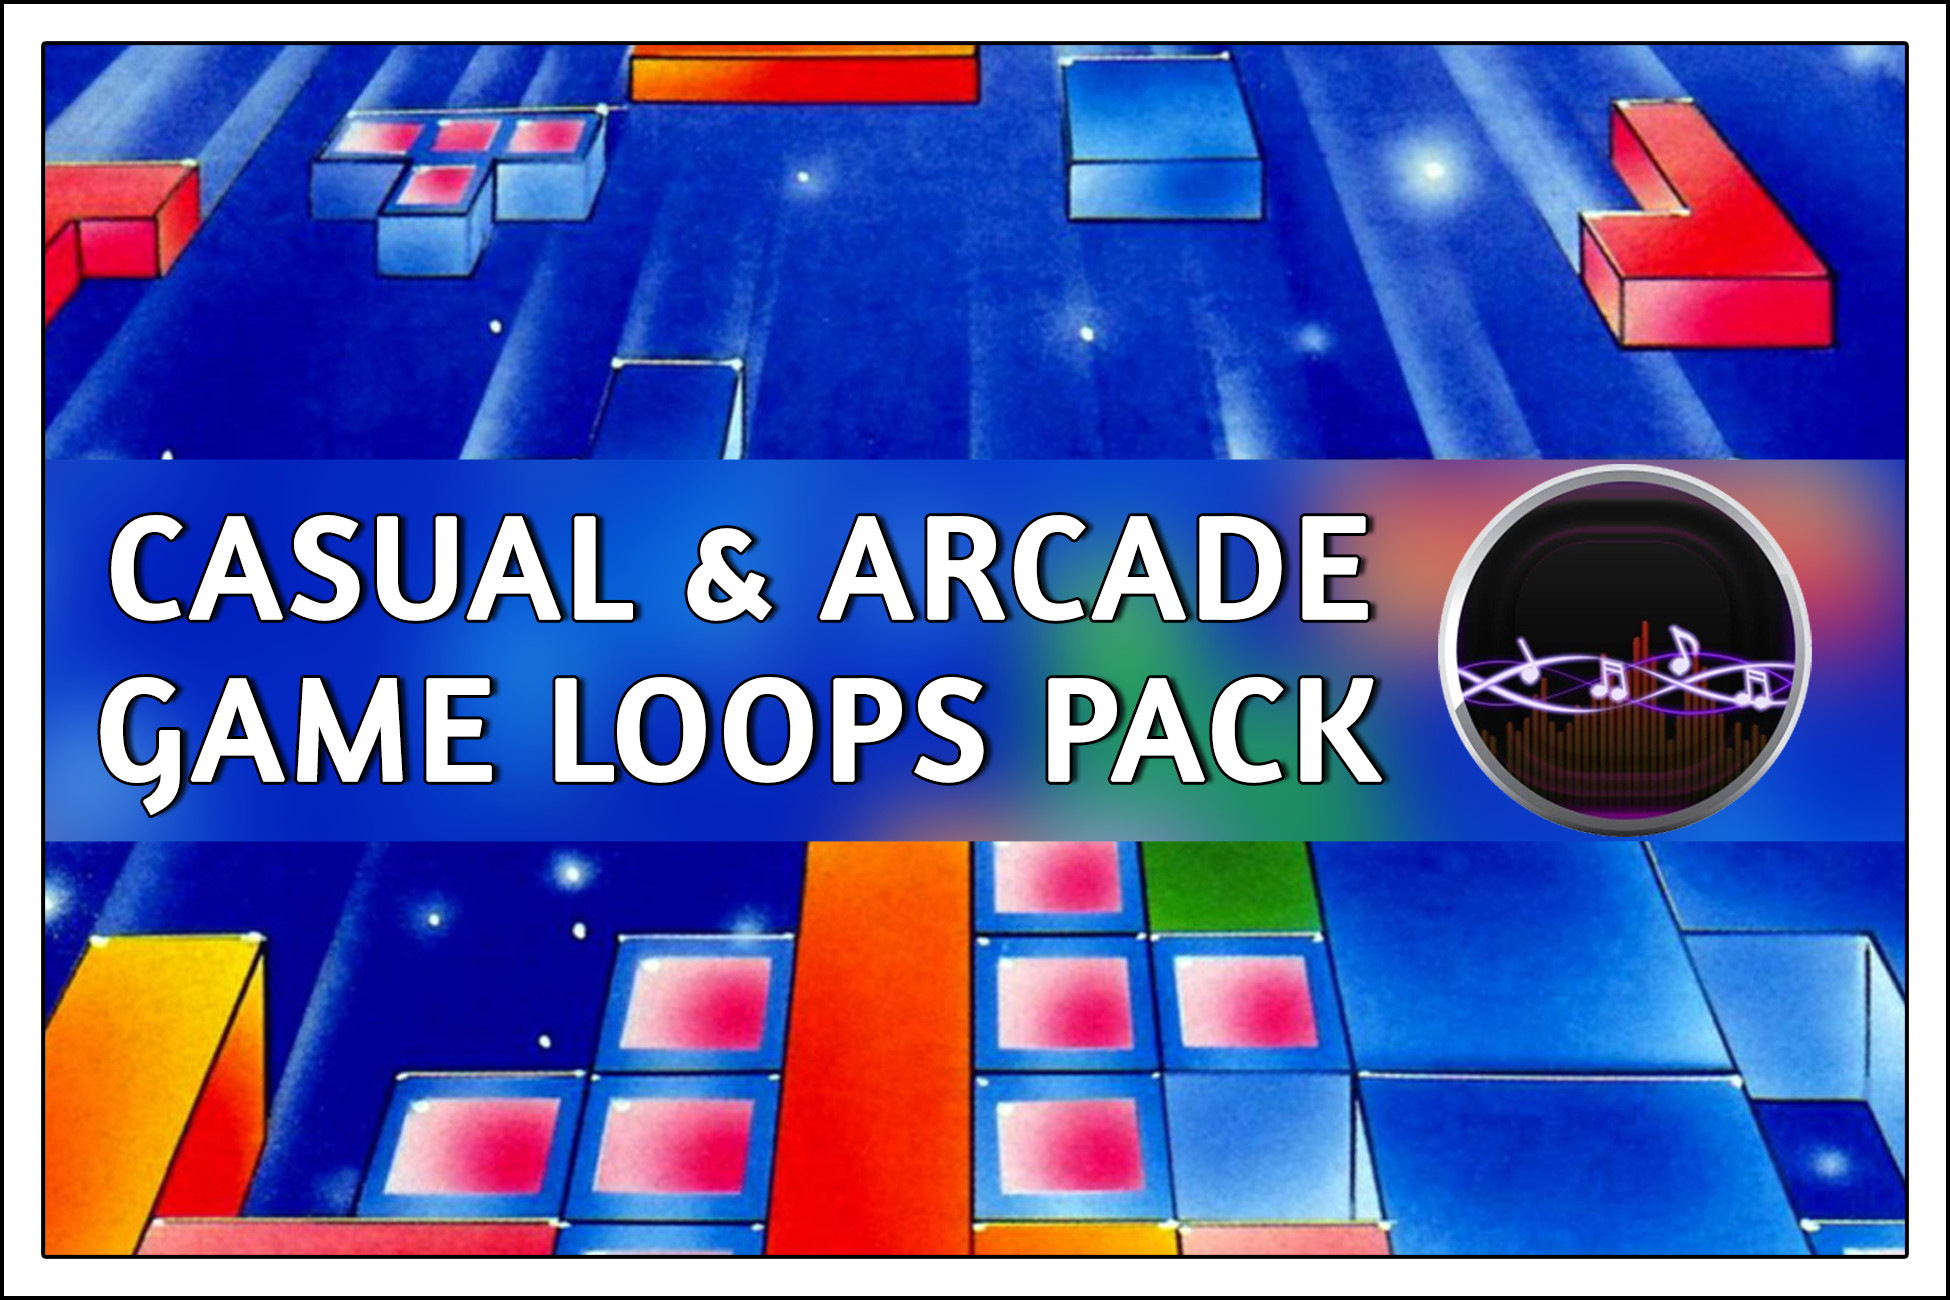 Casual & Arcade Game Loops